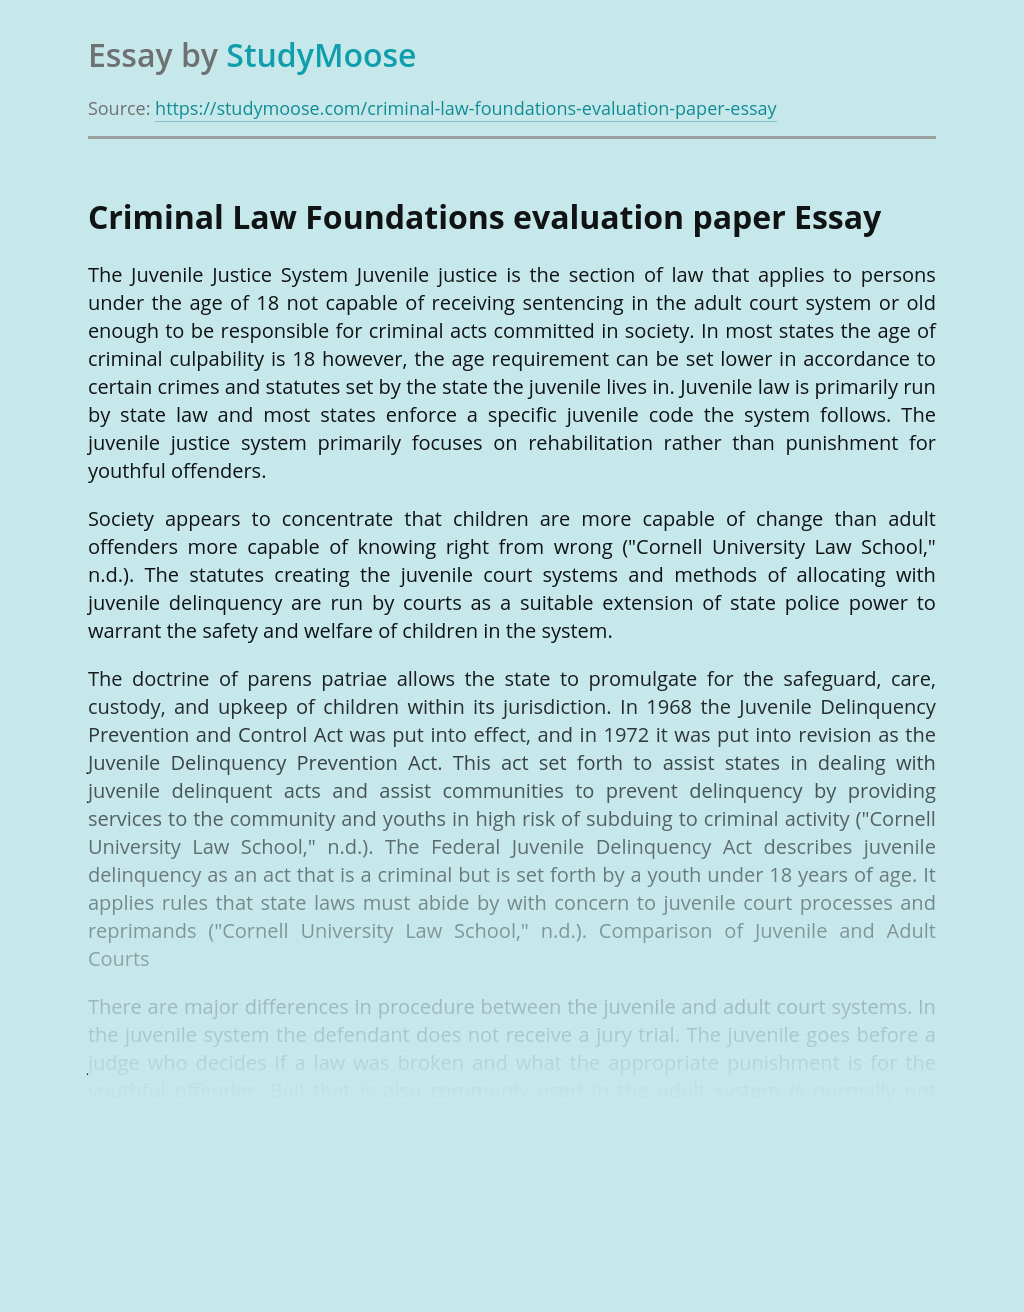 Criminal Law Foundations evaluation paper